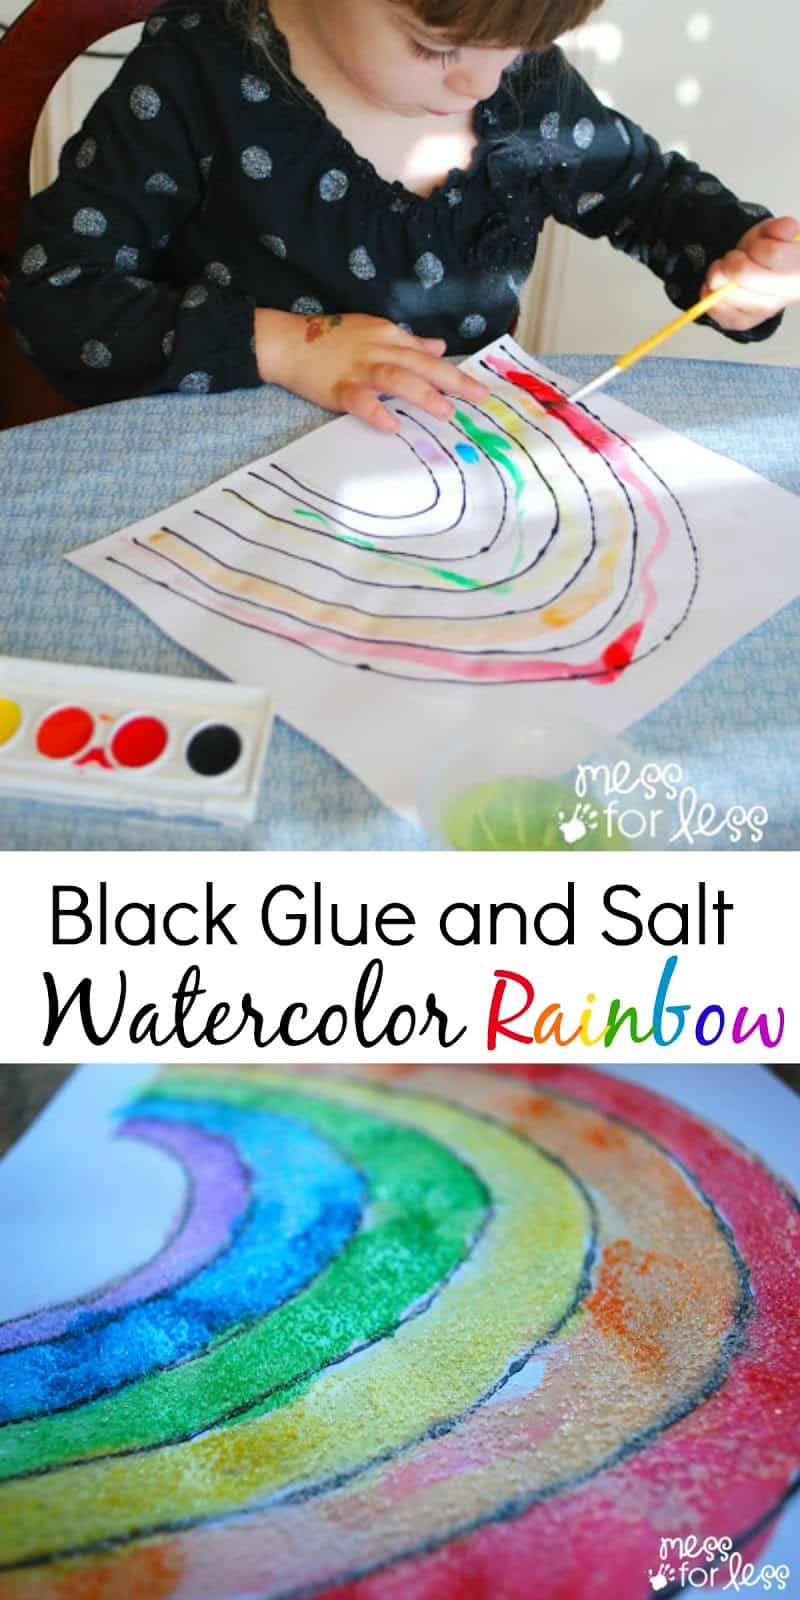 Salt Painting! Love the vibrancy of this Black Glue and Salt Watercolor Rainbow. One of our Favorite Rainbow Activities. Perfect for St. Patrick's Day or Spring.